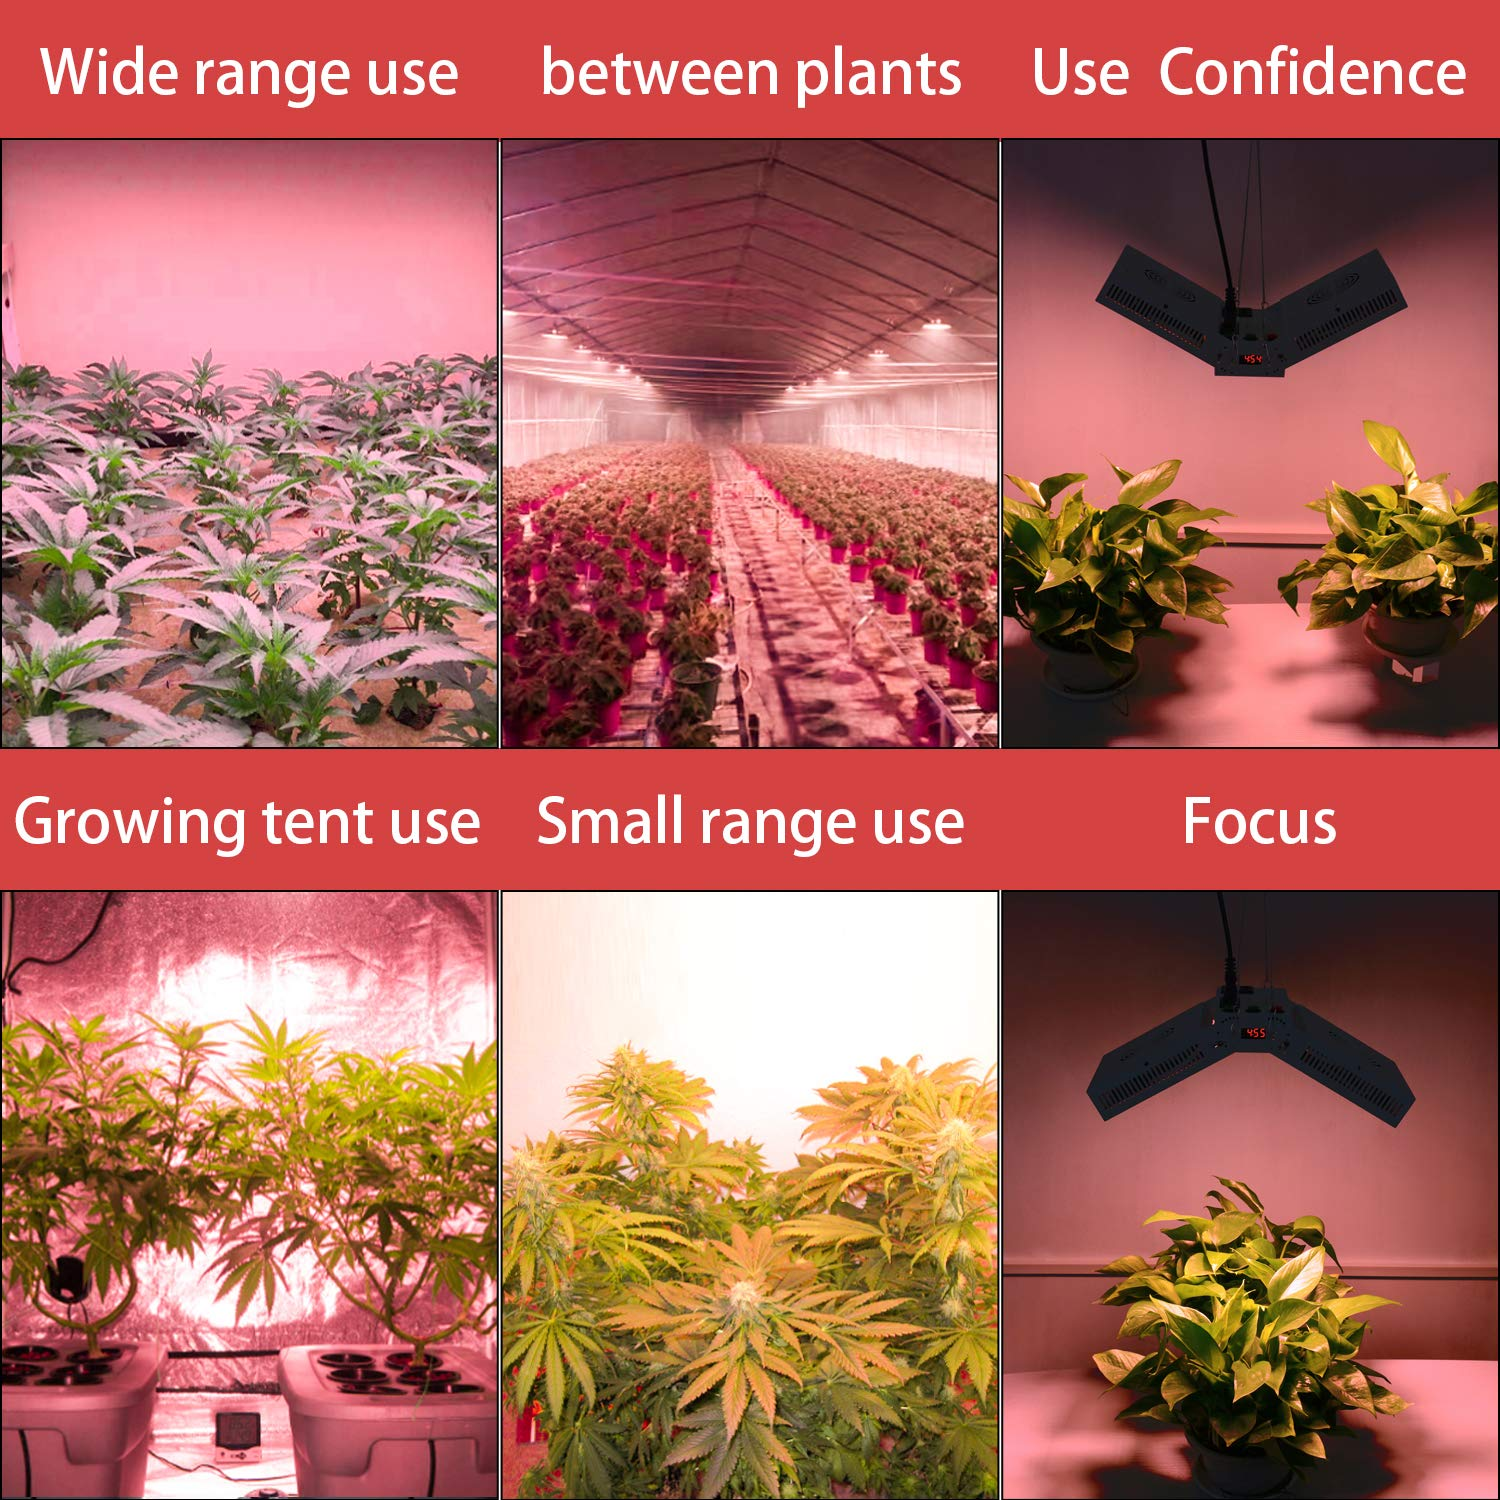 LED Grow Light 1000W Full Spectrum Growing Lamp LED for Indoor Plants Vegetables and Flowers LED Light Programmable Digital Electric Timer Switch Angle of Illumination Adjustable